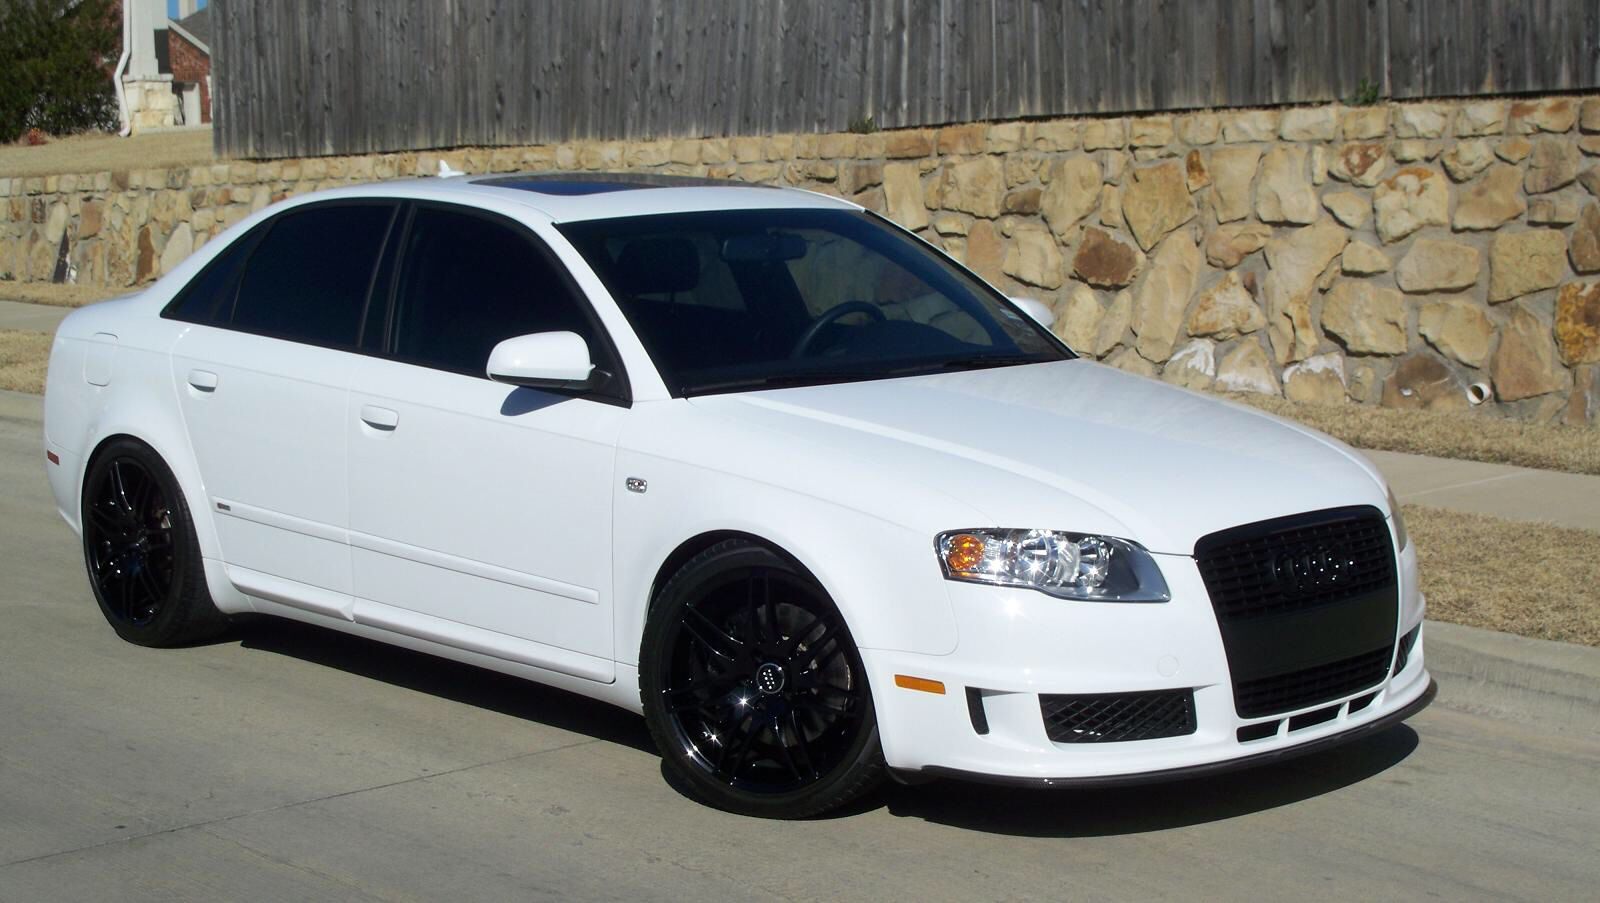 White Audi a4 with black rims